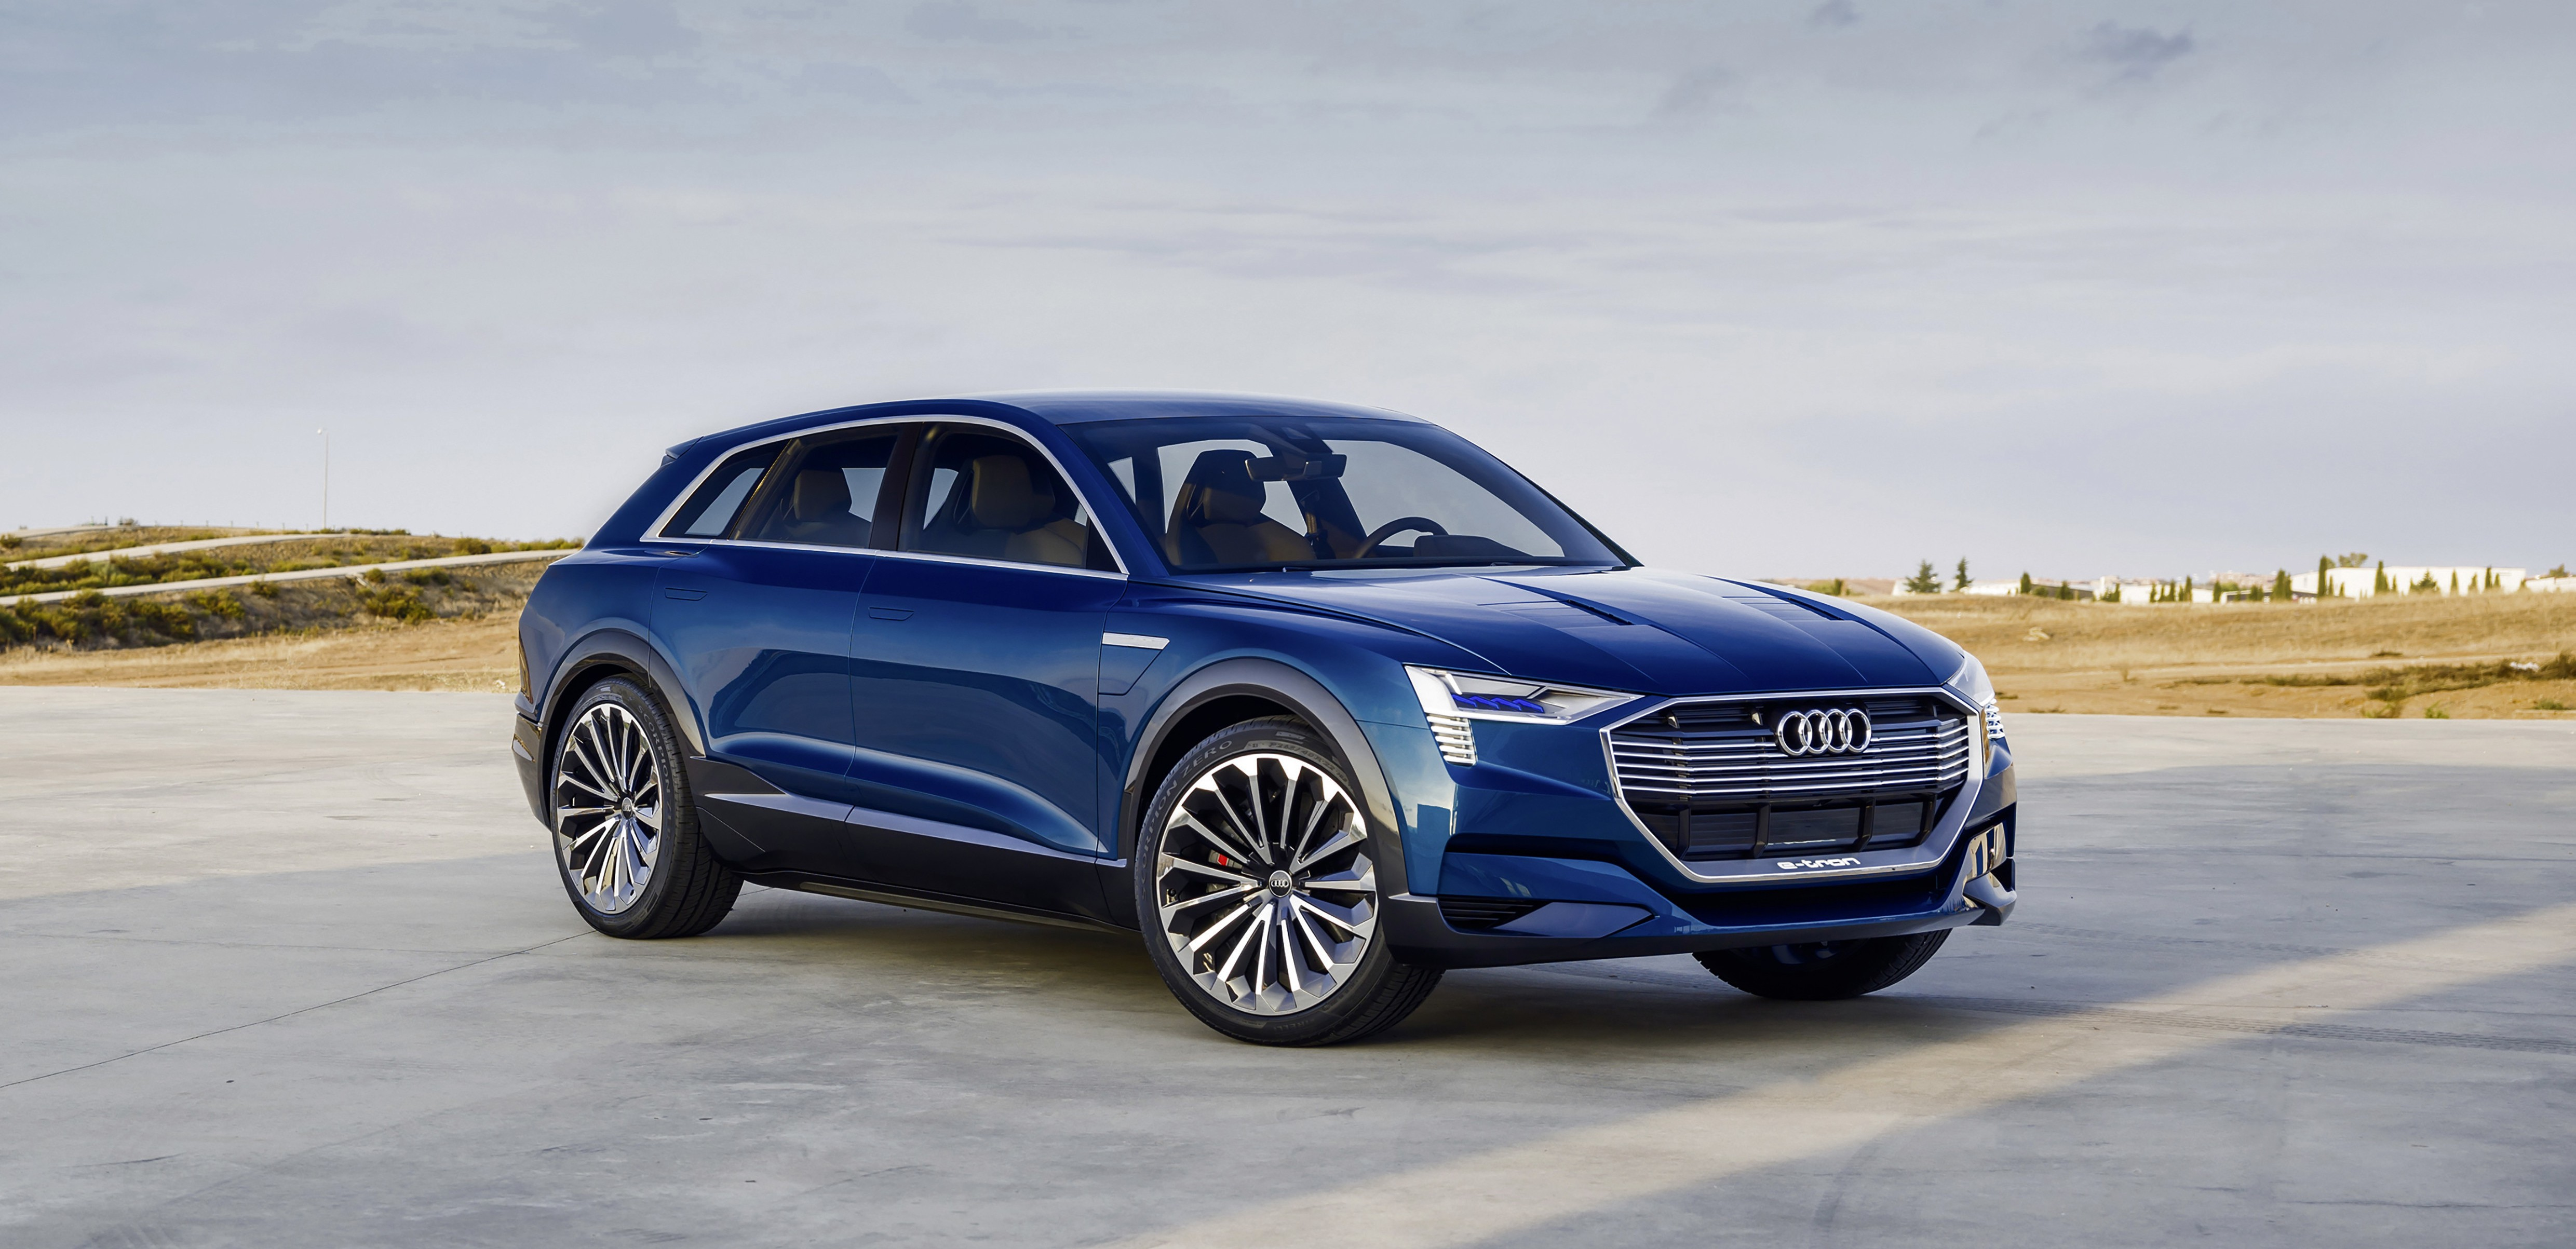 The Audi E Tron Quattro Concept Study That Was Presented At Frankfurt Motor Show In 2017 Provides A Clear Indication Of Final Production Version